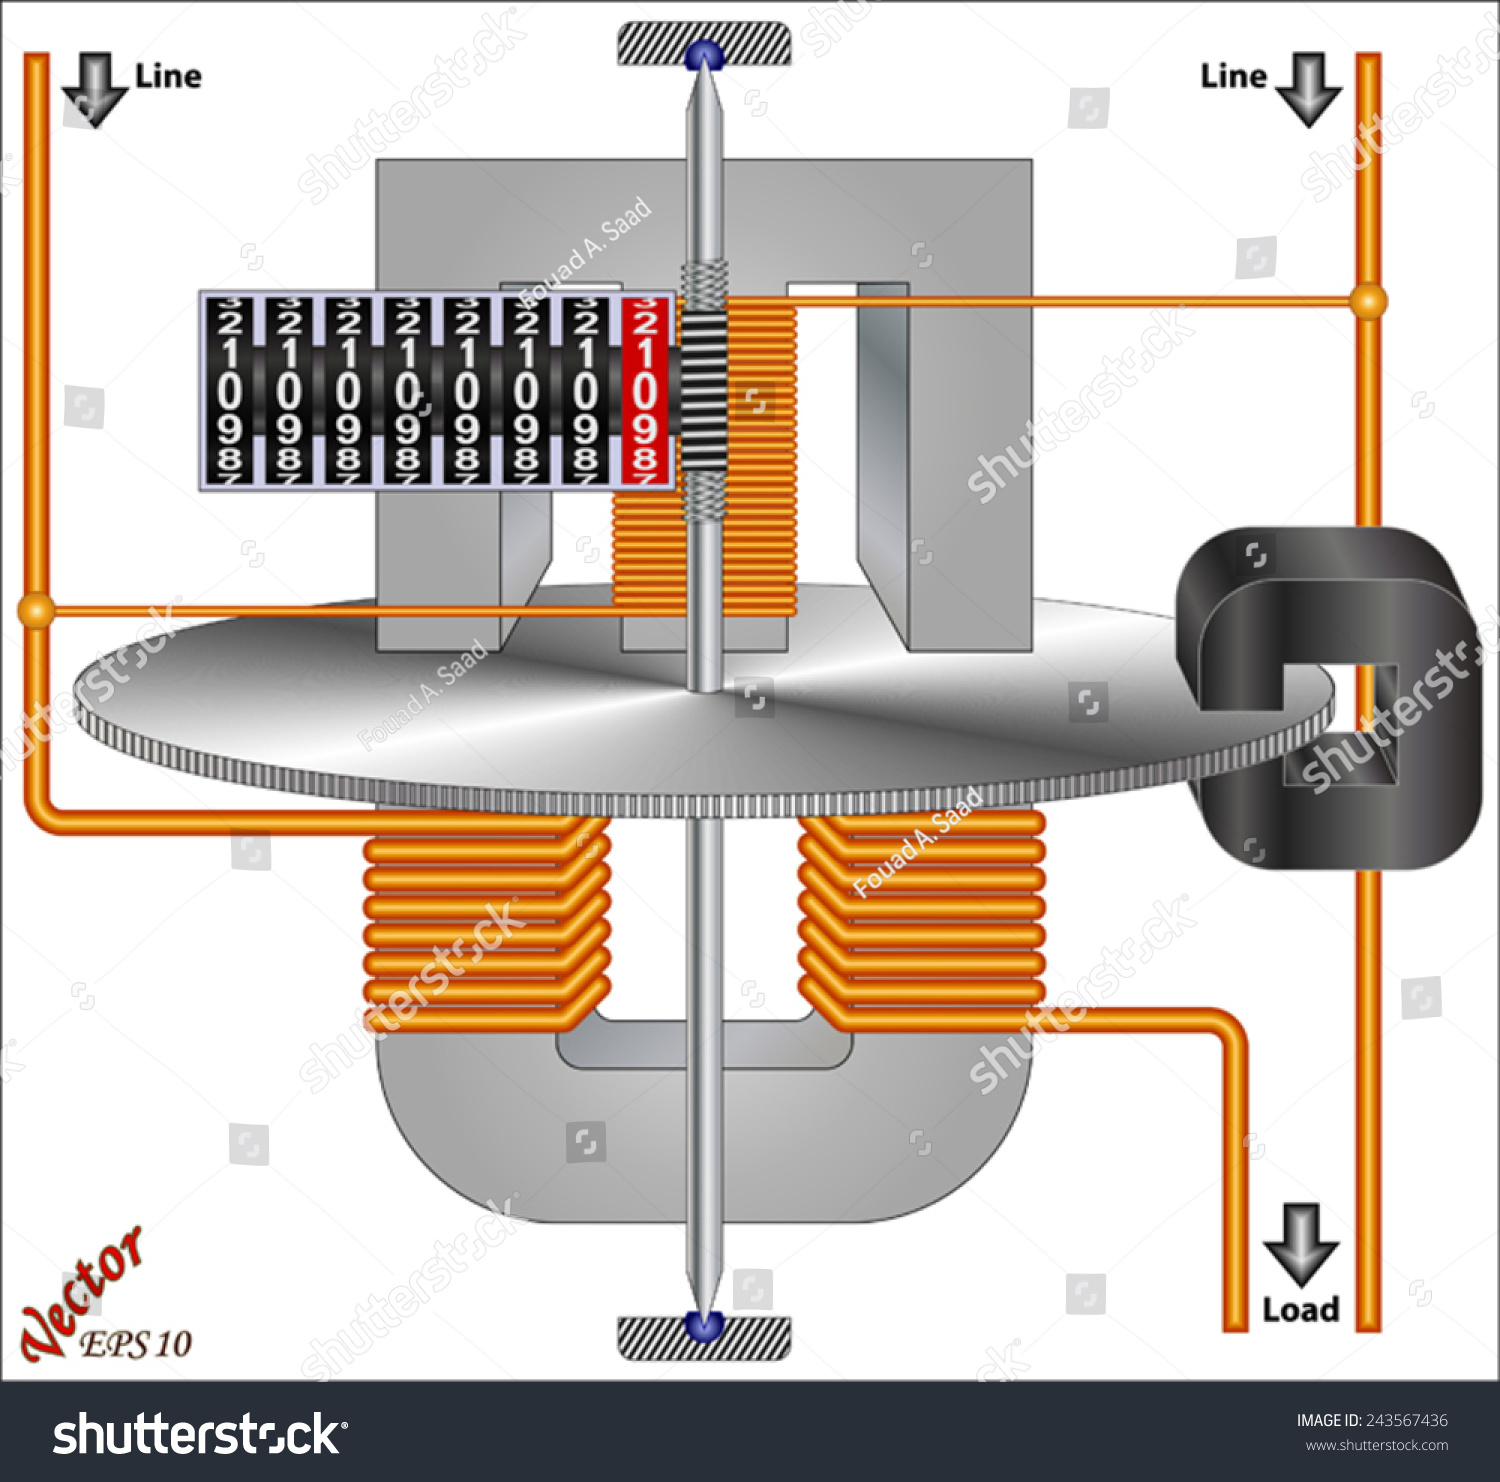 Single Phase Induction Kilowatt Hour Energy Stock Vector 243567436